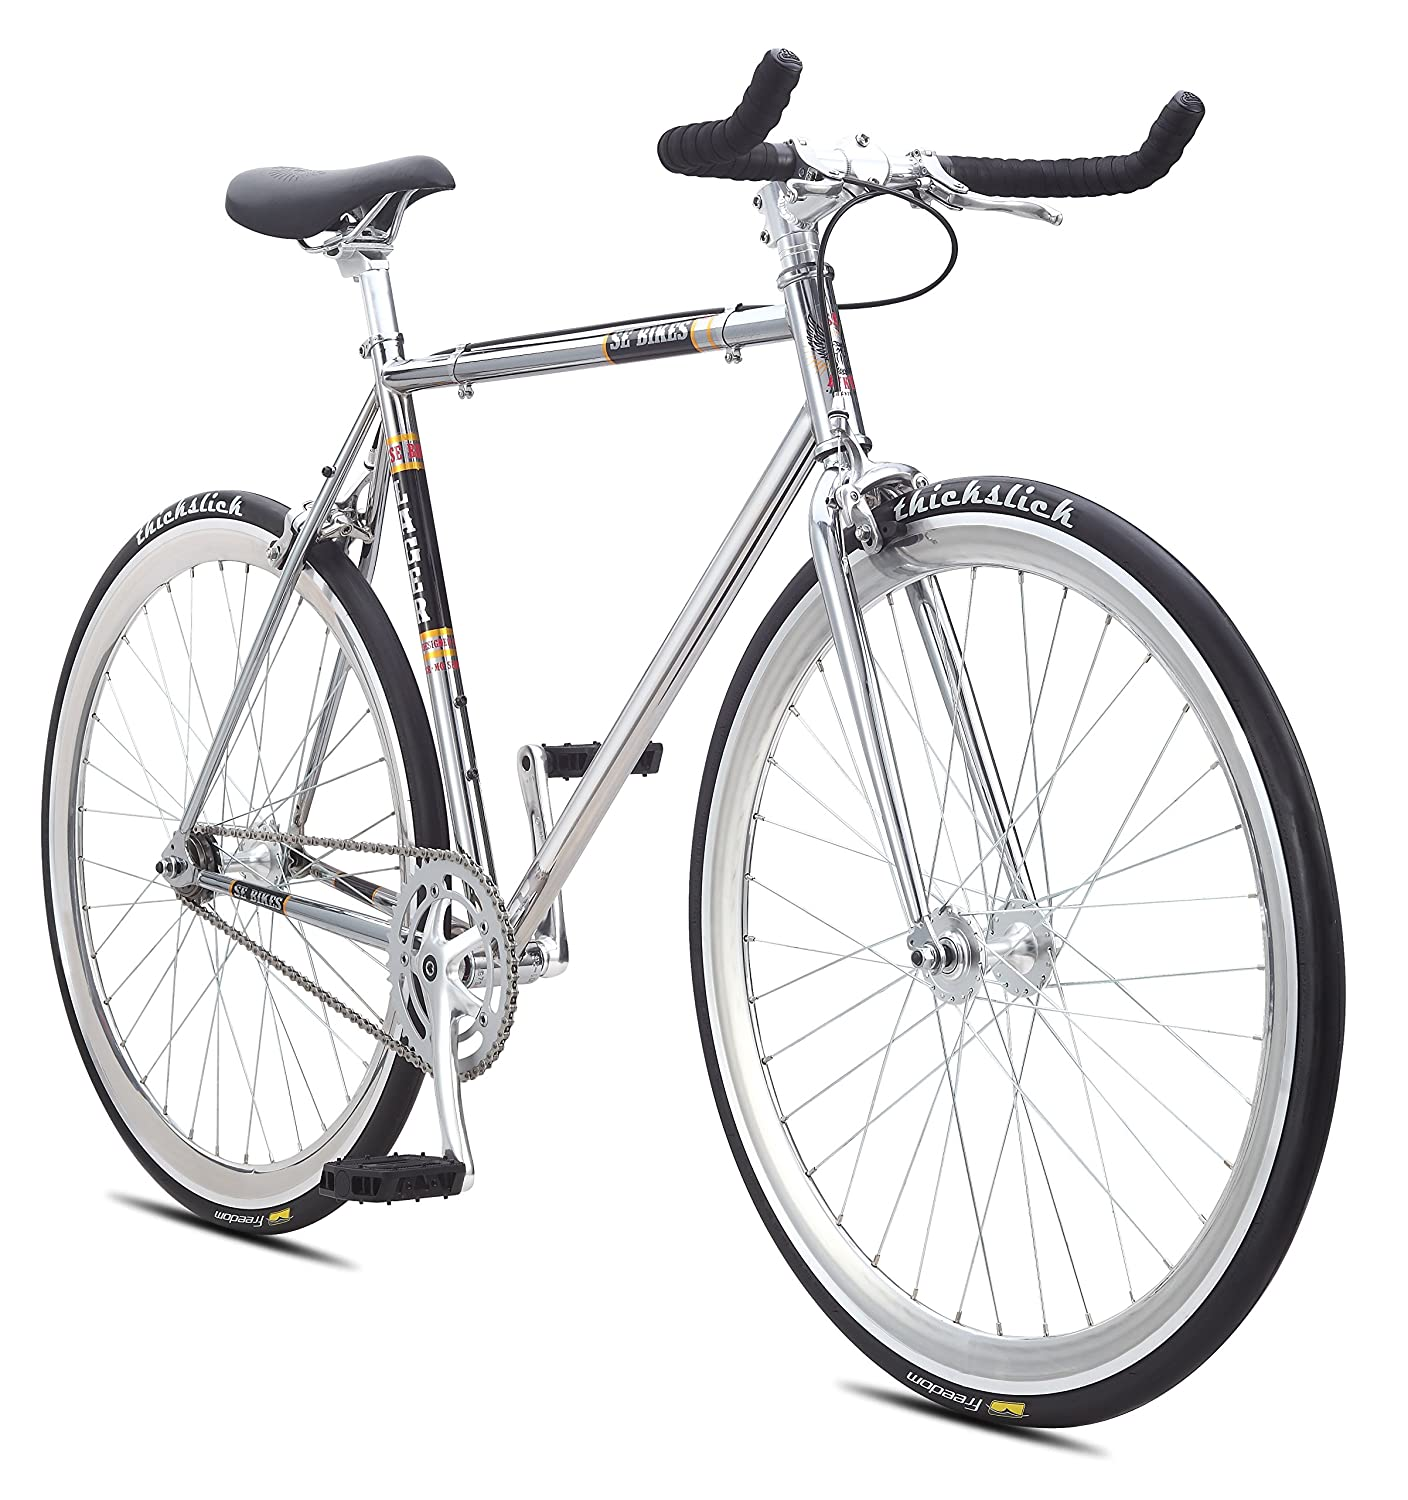 Amazon.com : SE Bicycles Larger Single Speed Bicycles, Chrome, 52cm ...